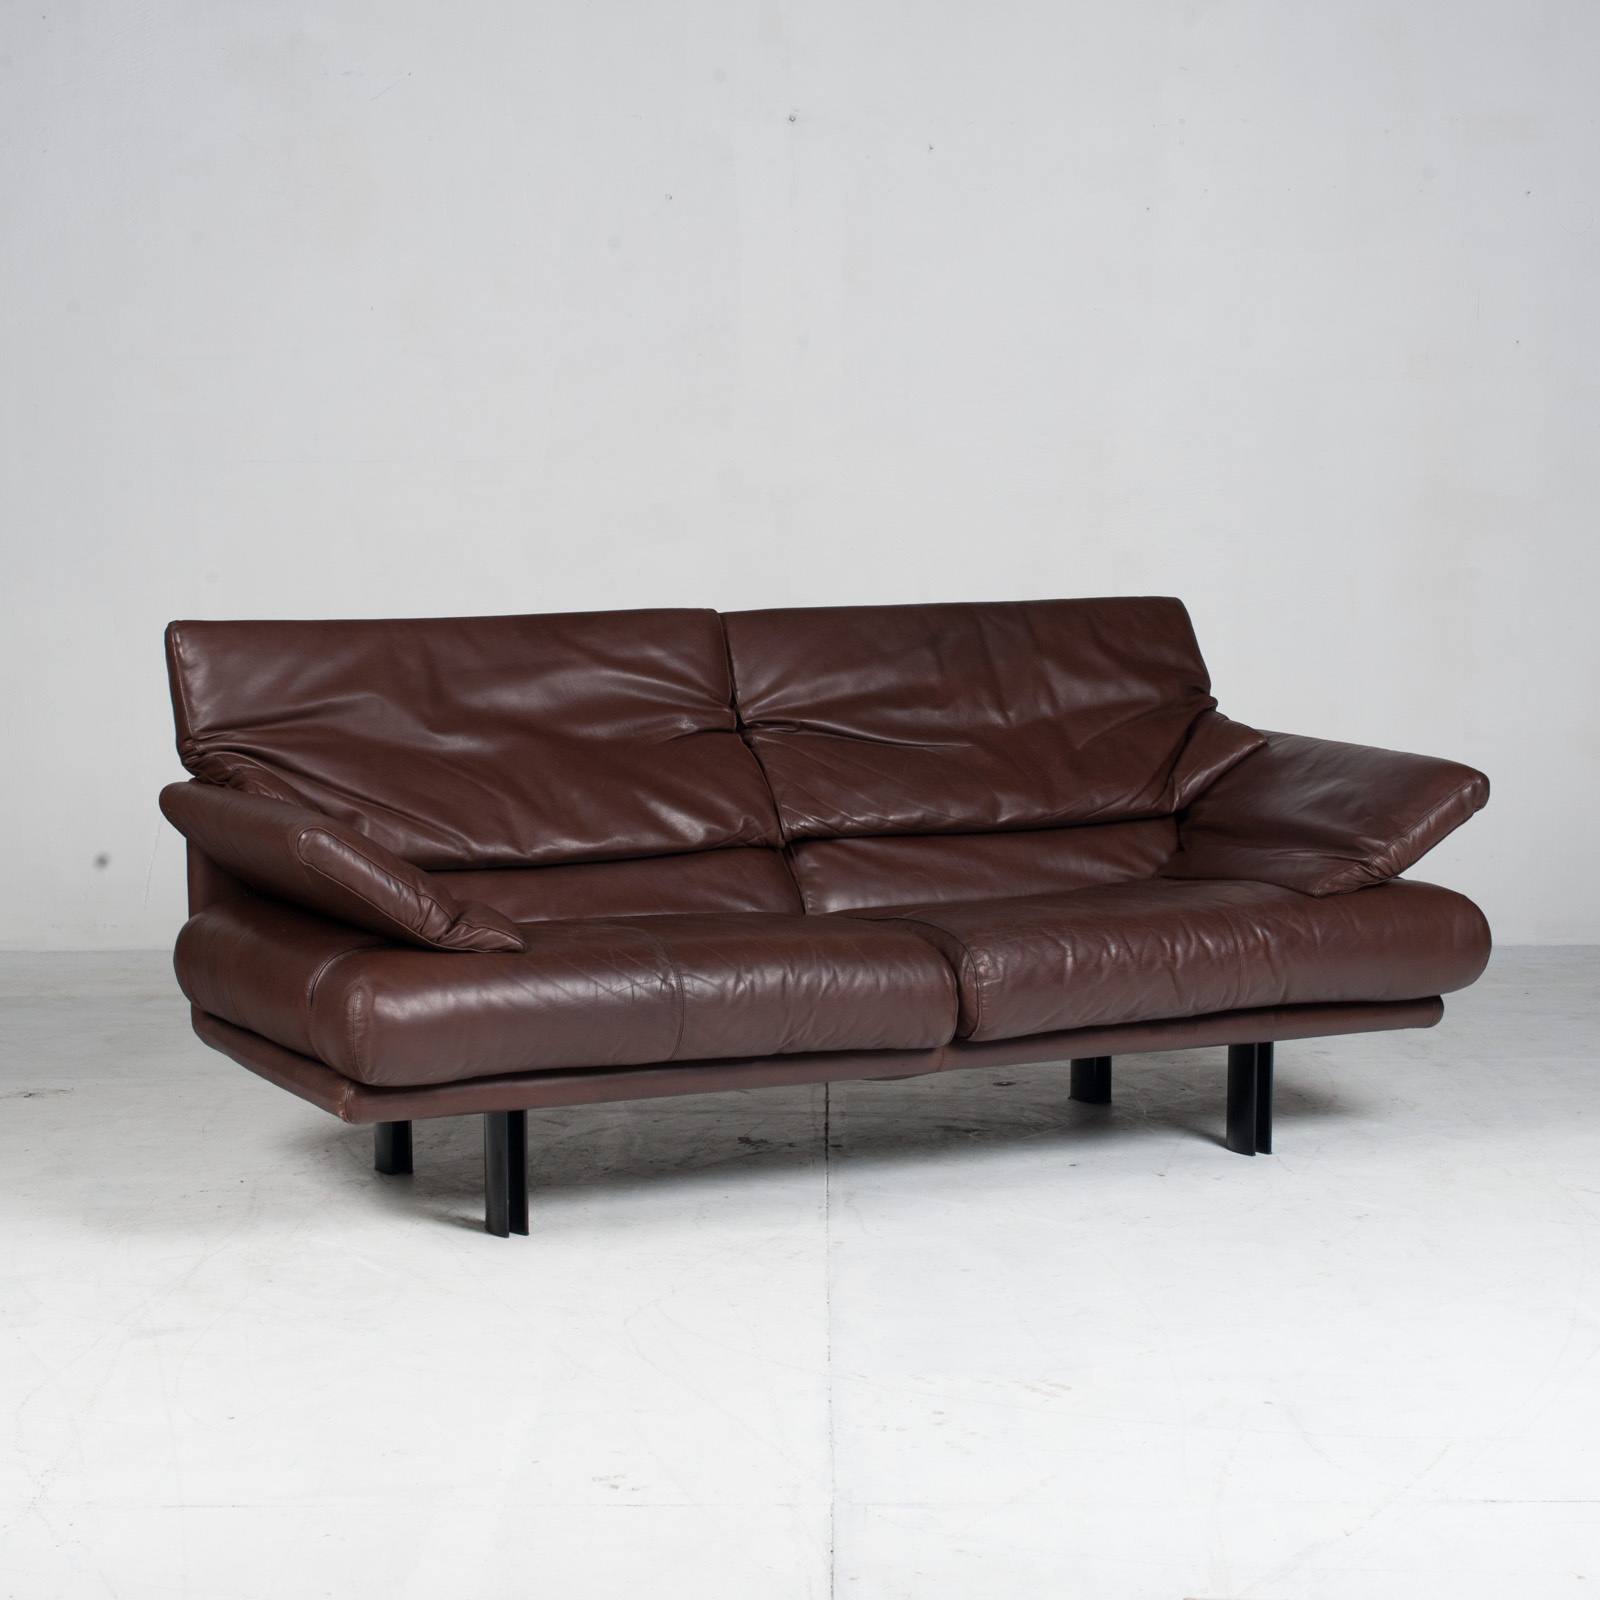 Alanda Sofa By Paolo Piva For B&b Italia In Burgundy Leather 1980s Italy 04